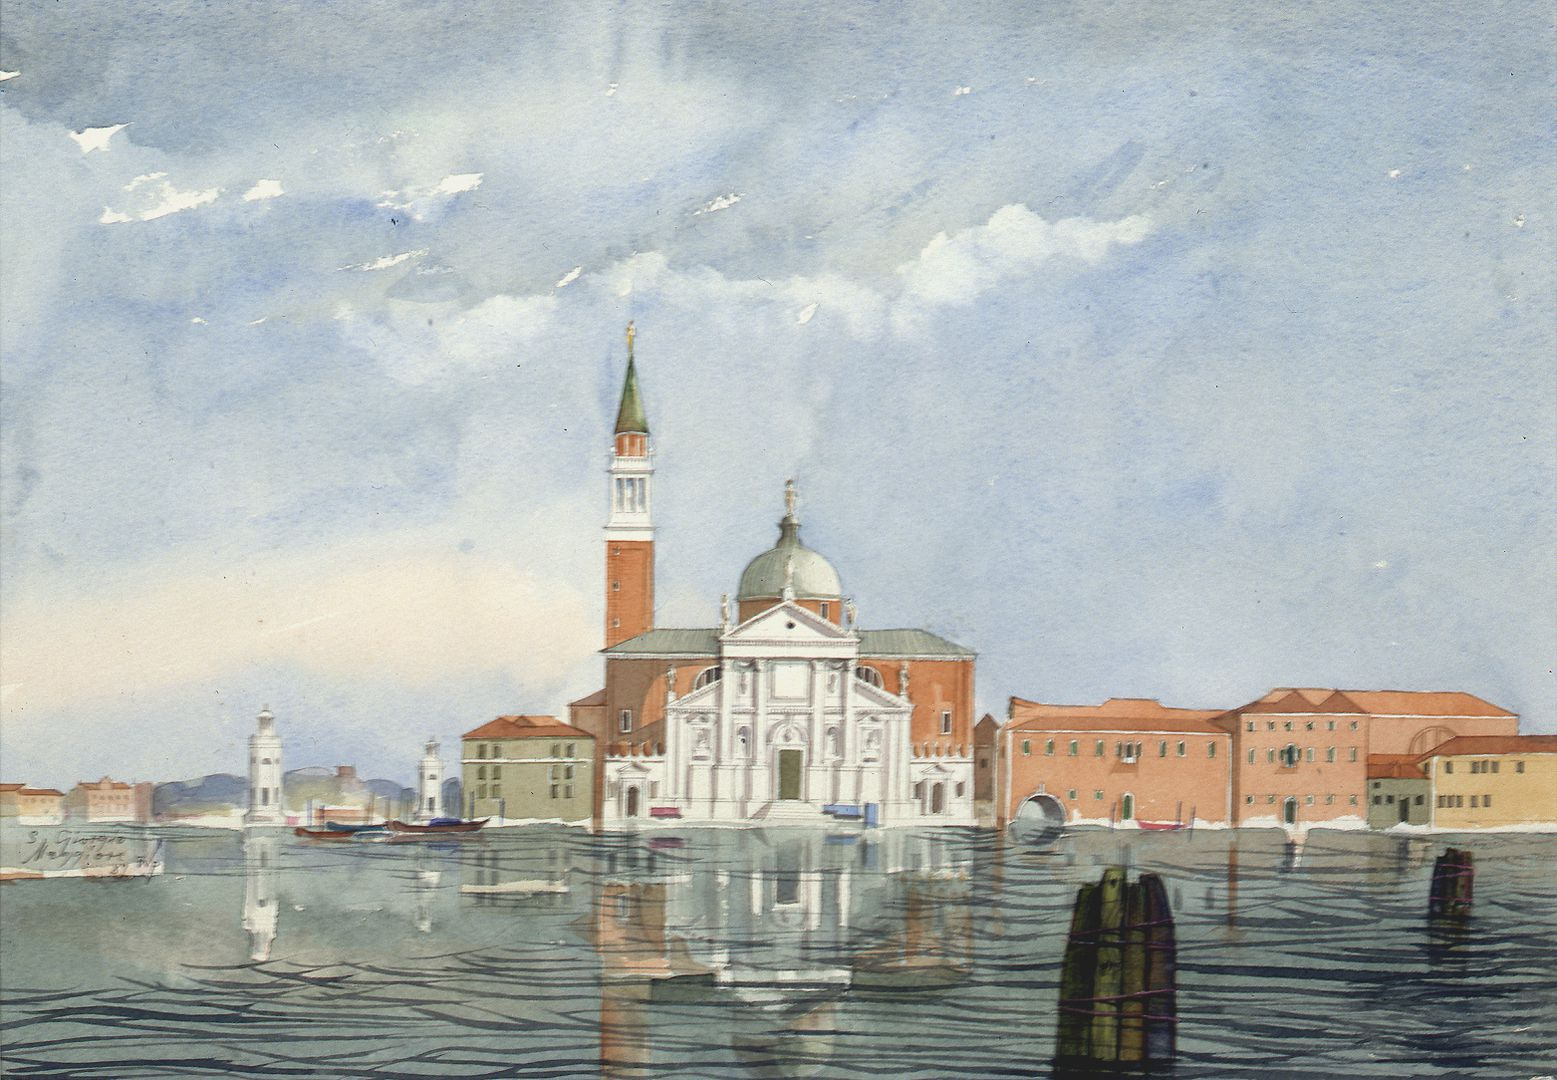 San Giorgio Maggiore (Venice) Situation on the bank with church building by Andrea Palladio, on the left harbor entrance of the island